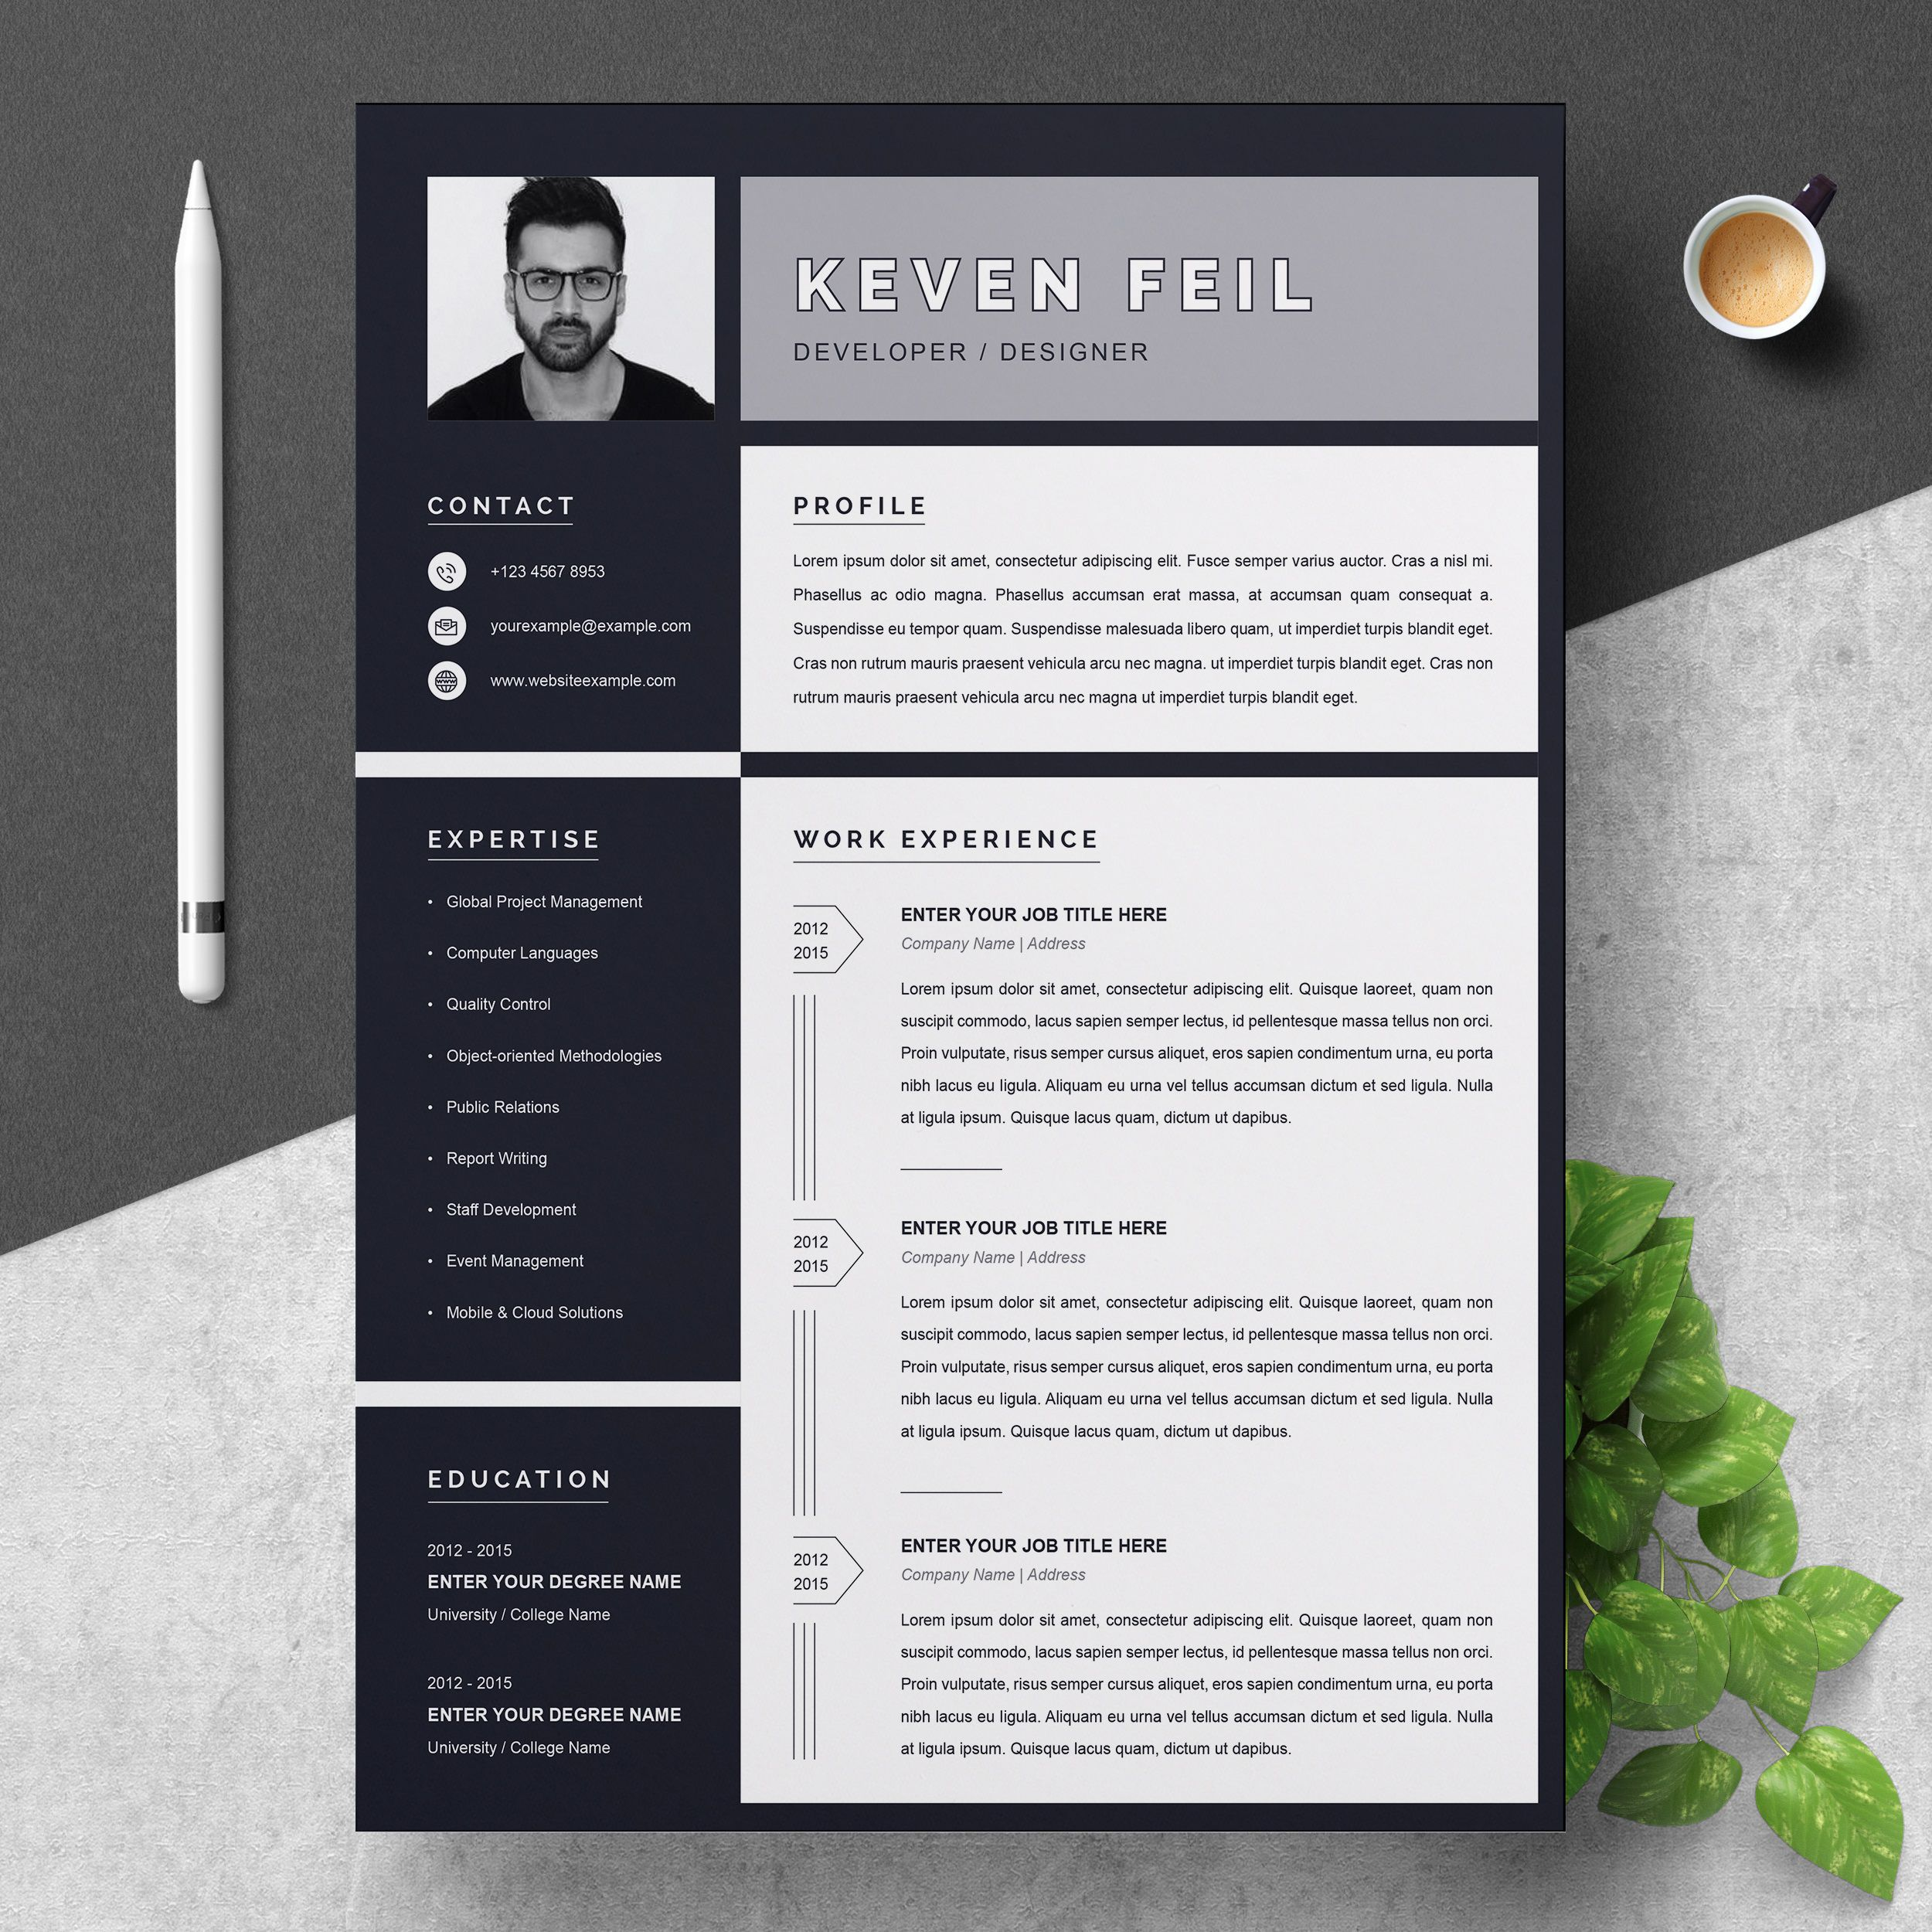 001 Marvelou Download Resume Template Free Mac Highest Clarity  ForFull